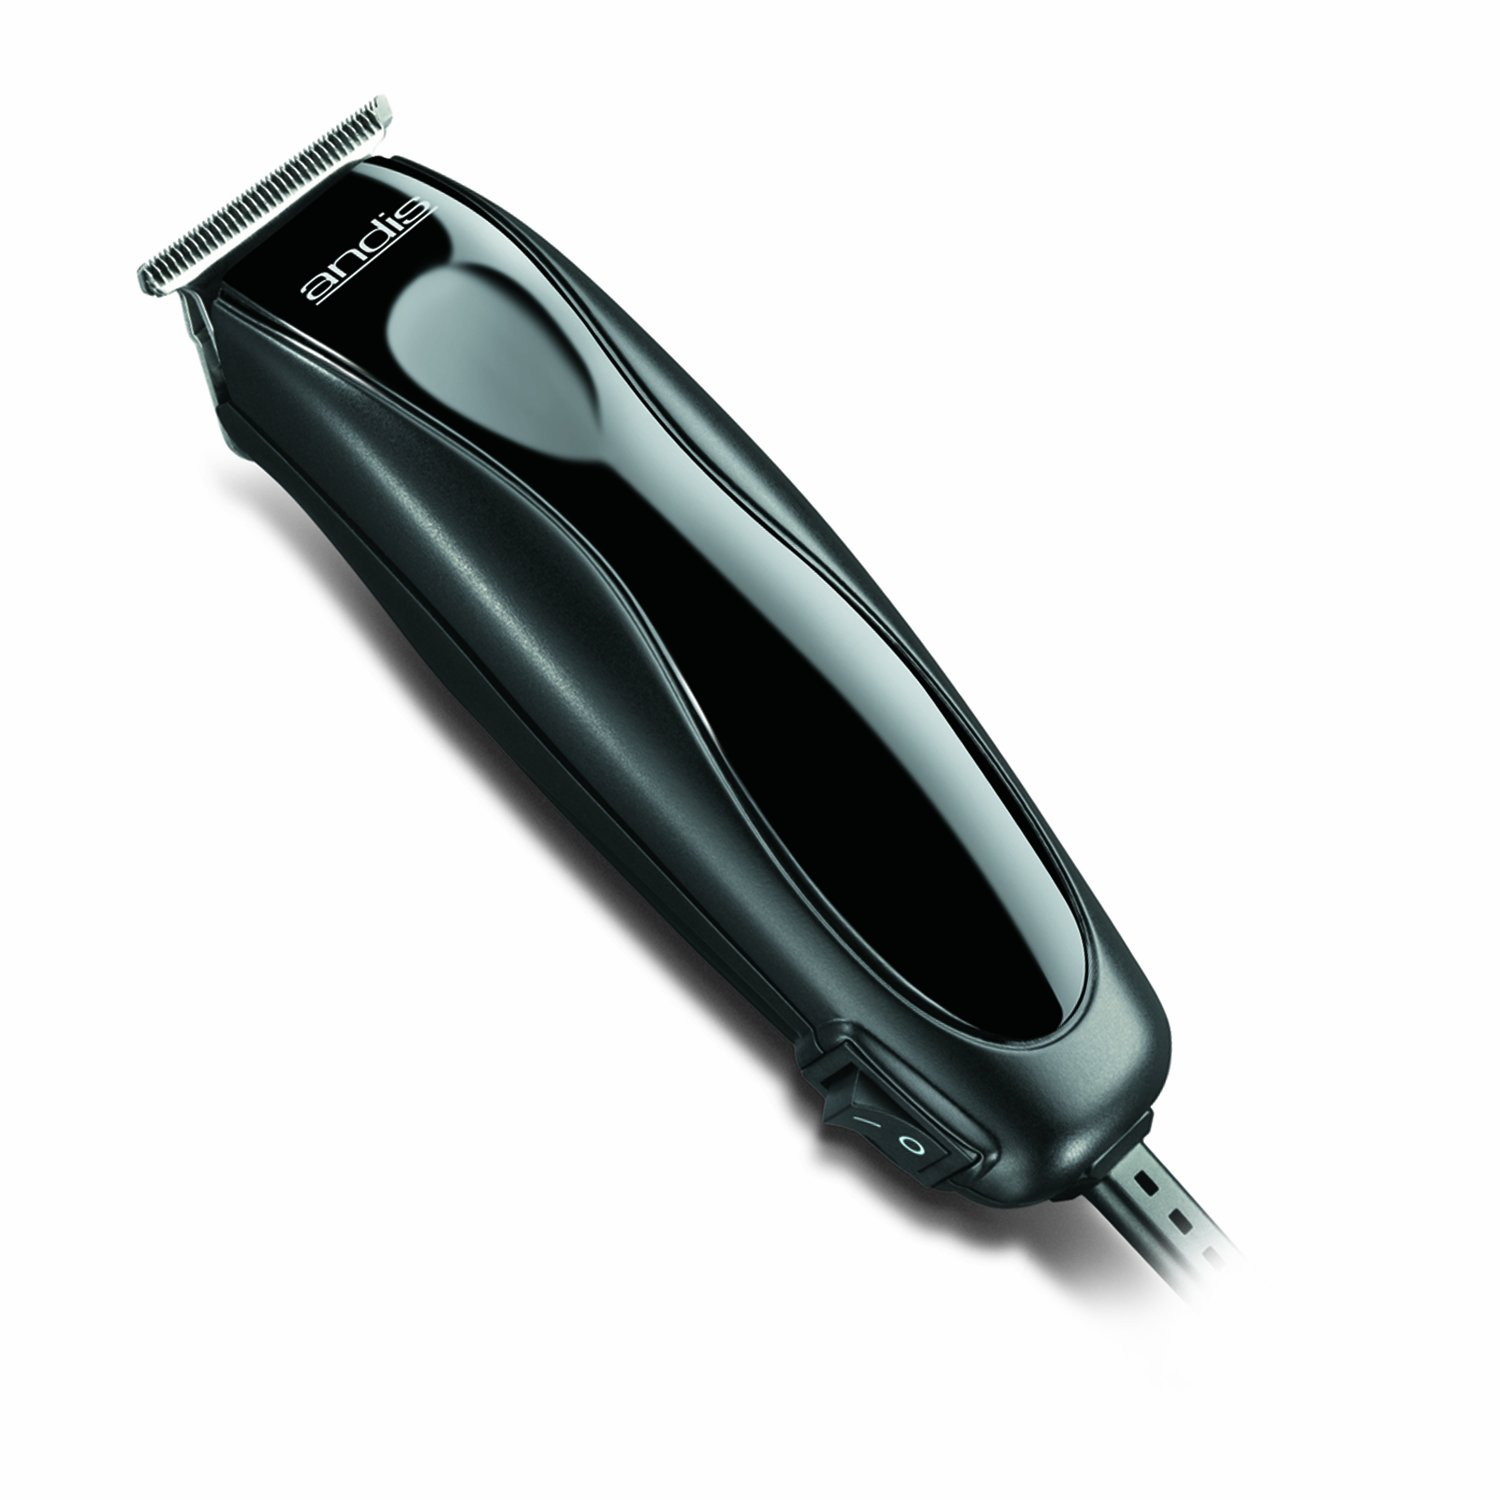 Andis Skin-Close Headliner 11-Piece Hair Clipper/Beard Trimmer Kit, Black, Model LS-2 (29775)